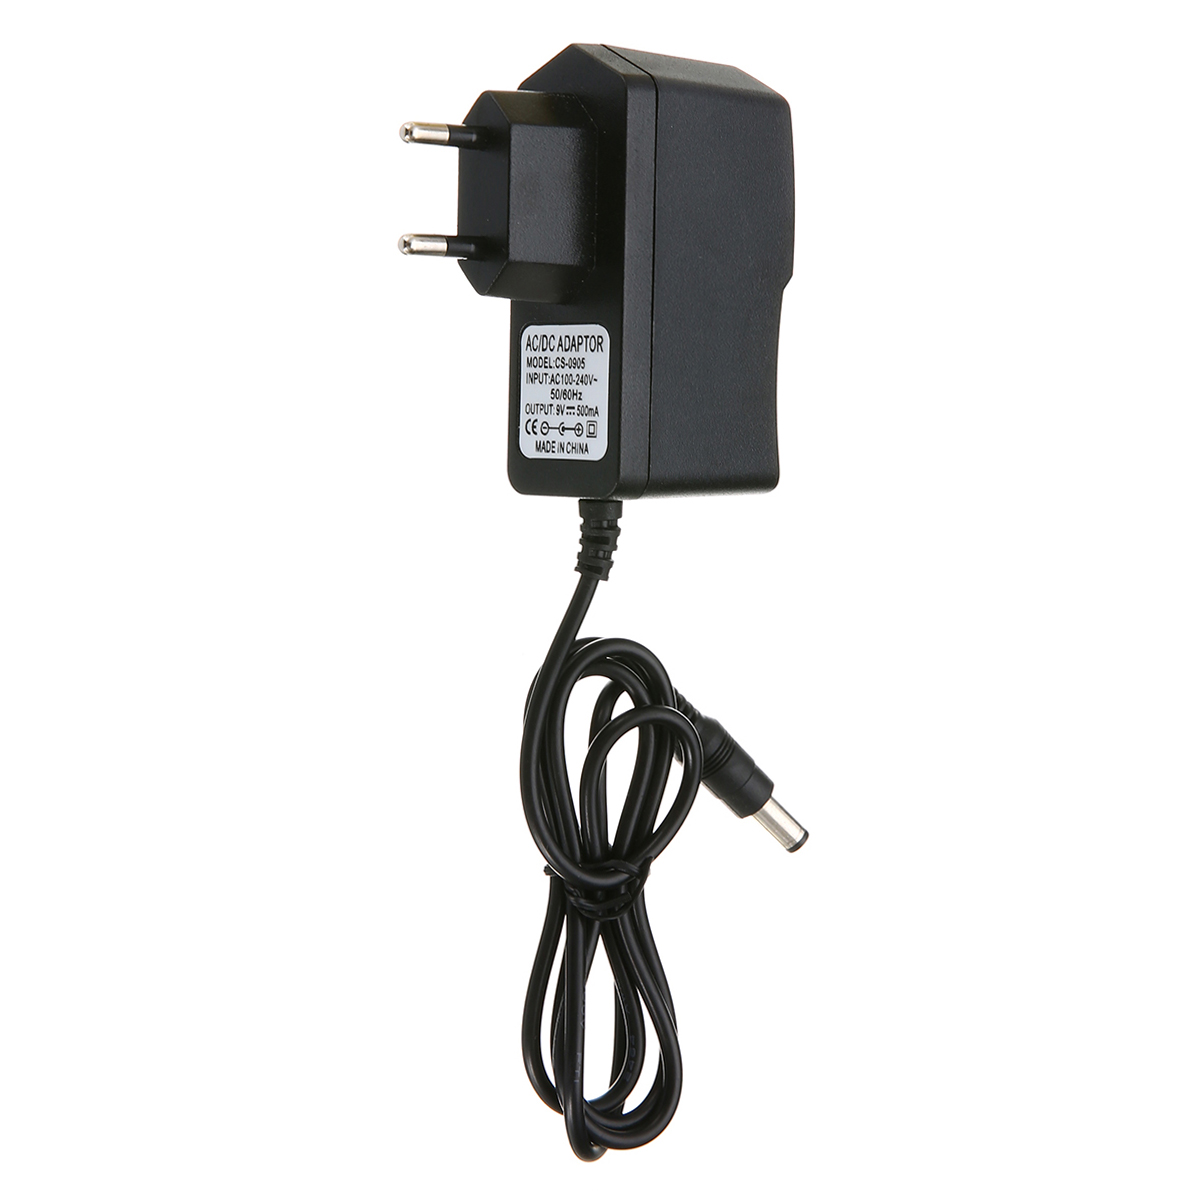 Top 99 Cheap Products Ac Dc 9v Adapter In Bulbs 100 240v To 1a Switching Power Supply Converter Eu 1pc Plug 05a 500ma 9w For Light Digital Optoelectronic Mayitr